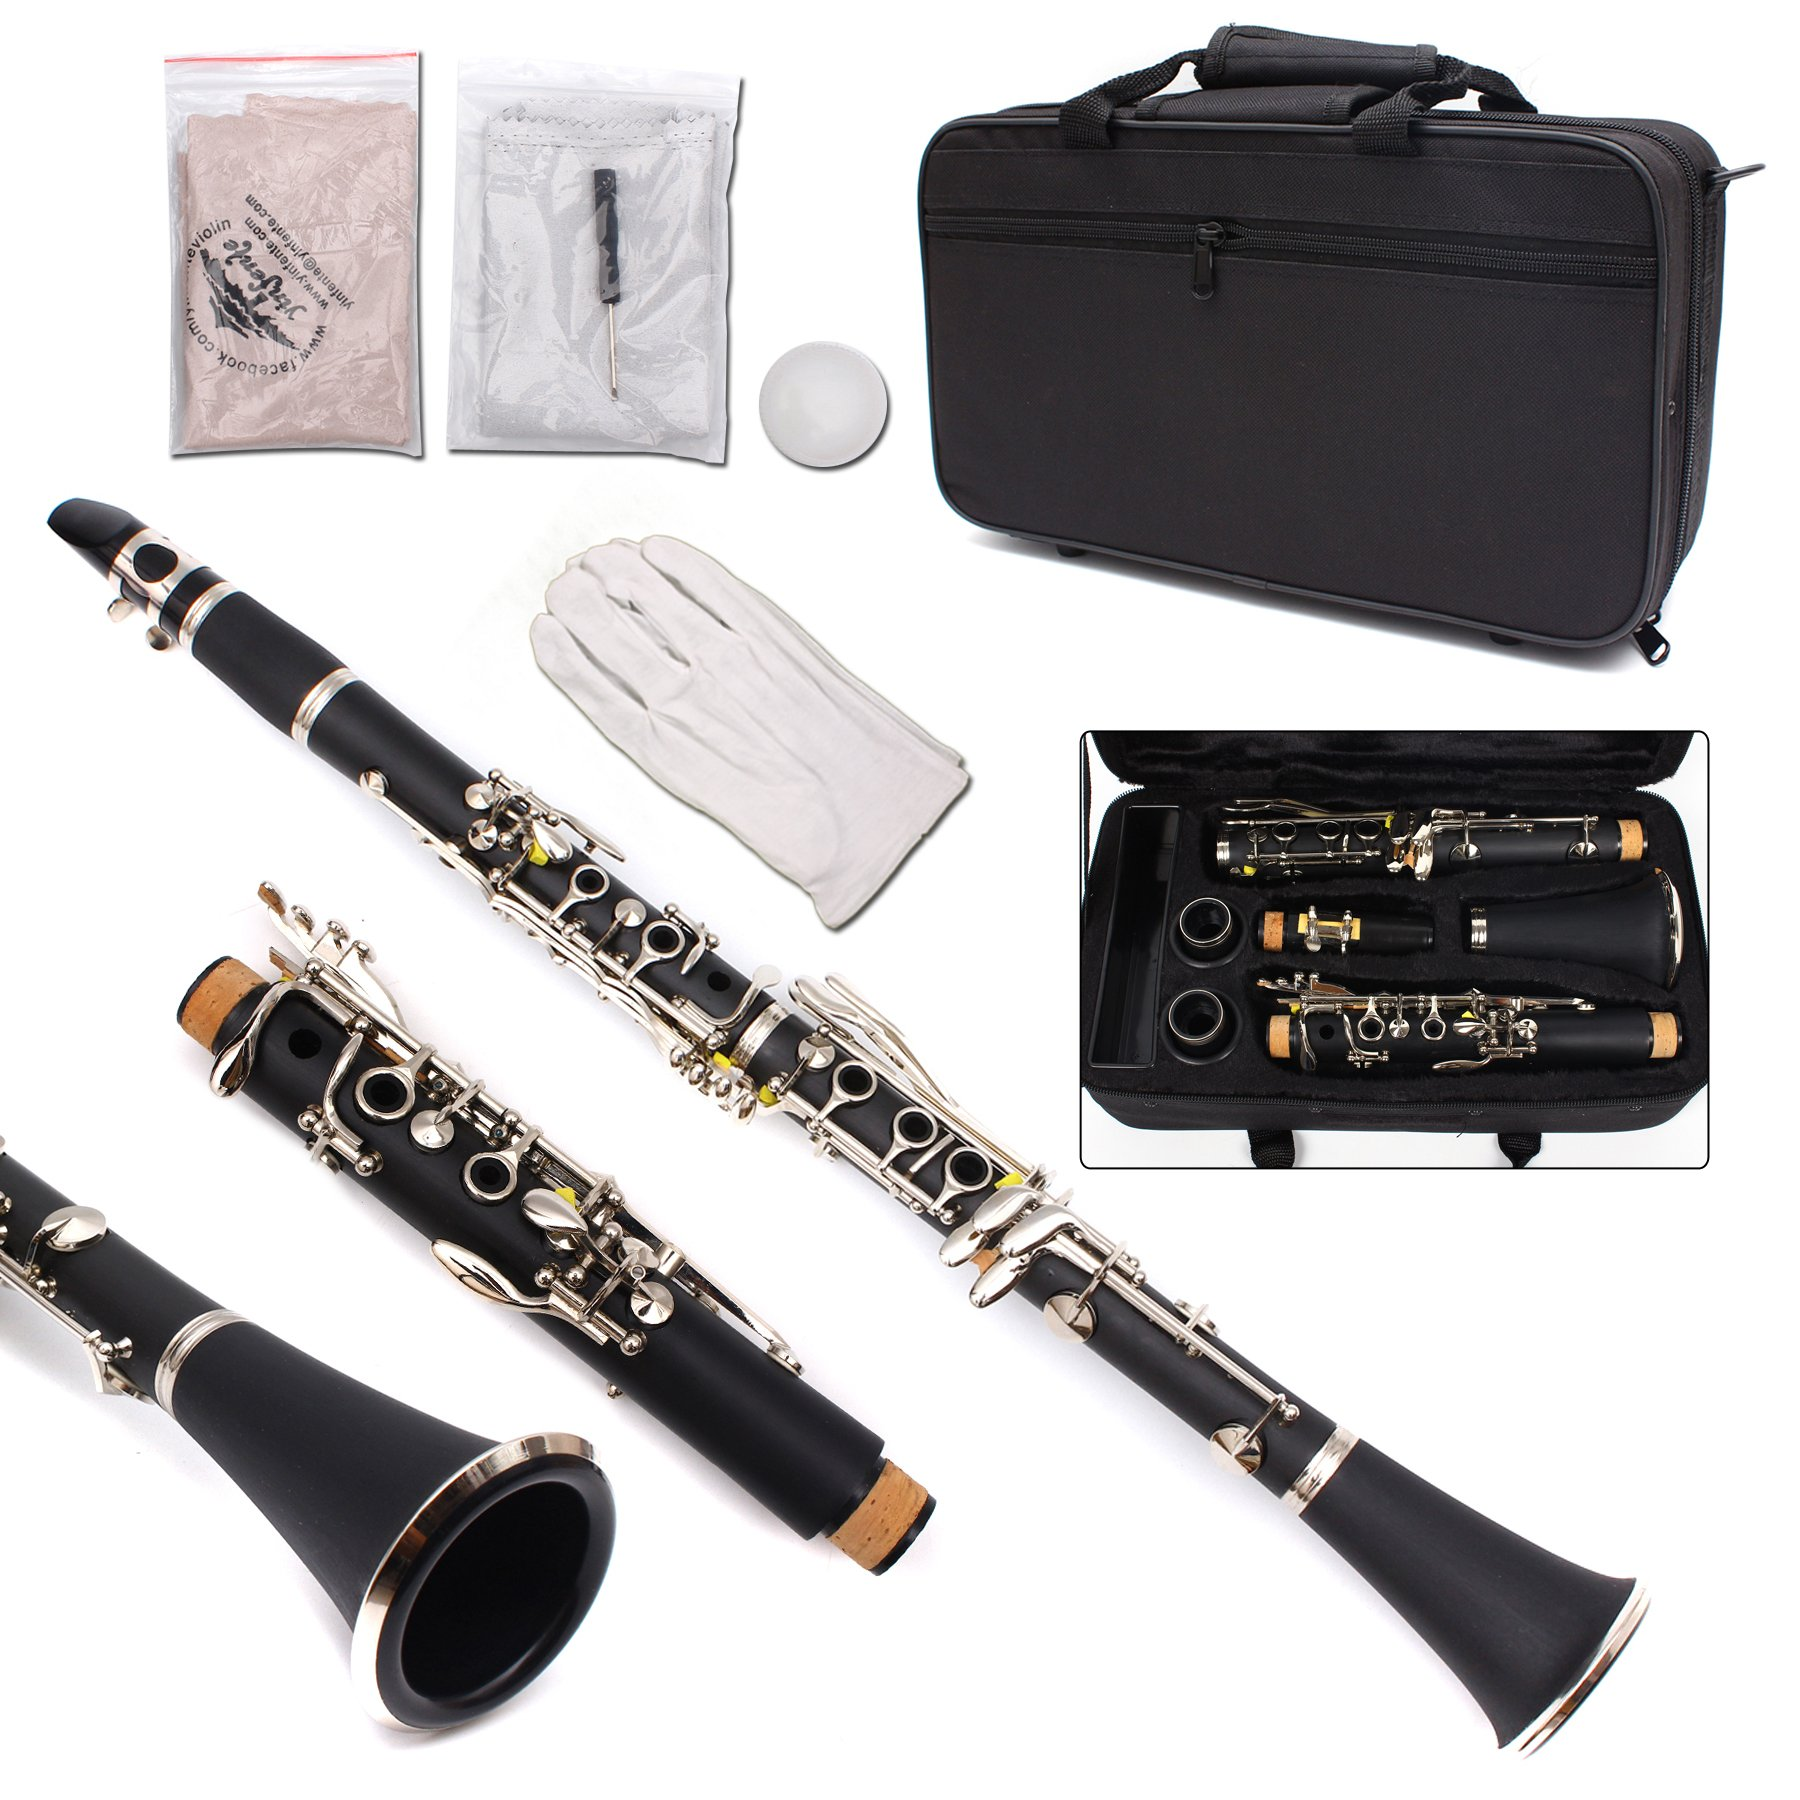 Yinfente Professional B Flat Clarinet Ebonite Wood 2 Barrels With Case Cloth Reed Accessories (Black)